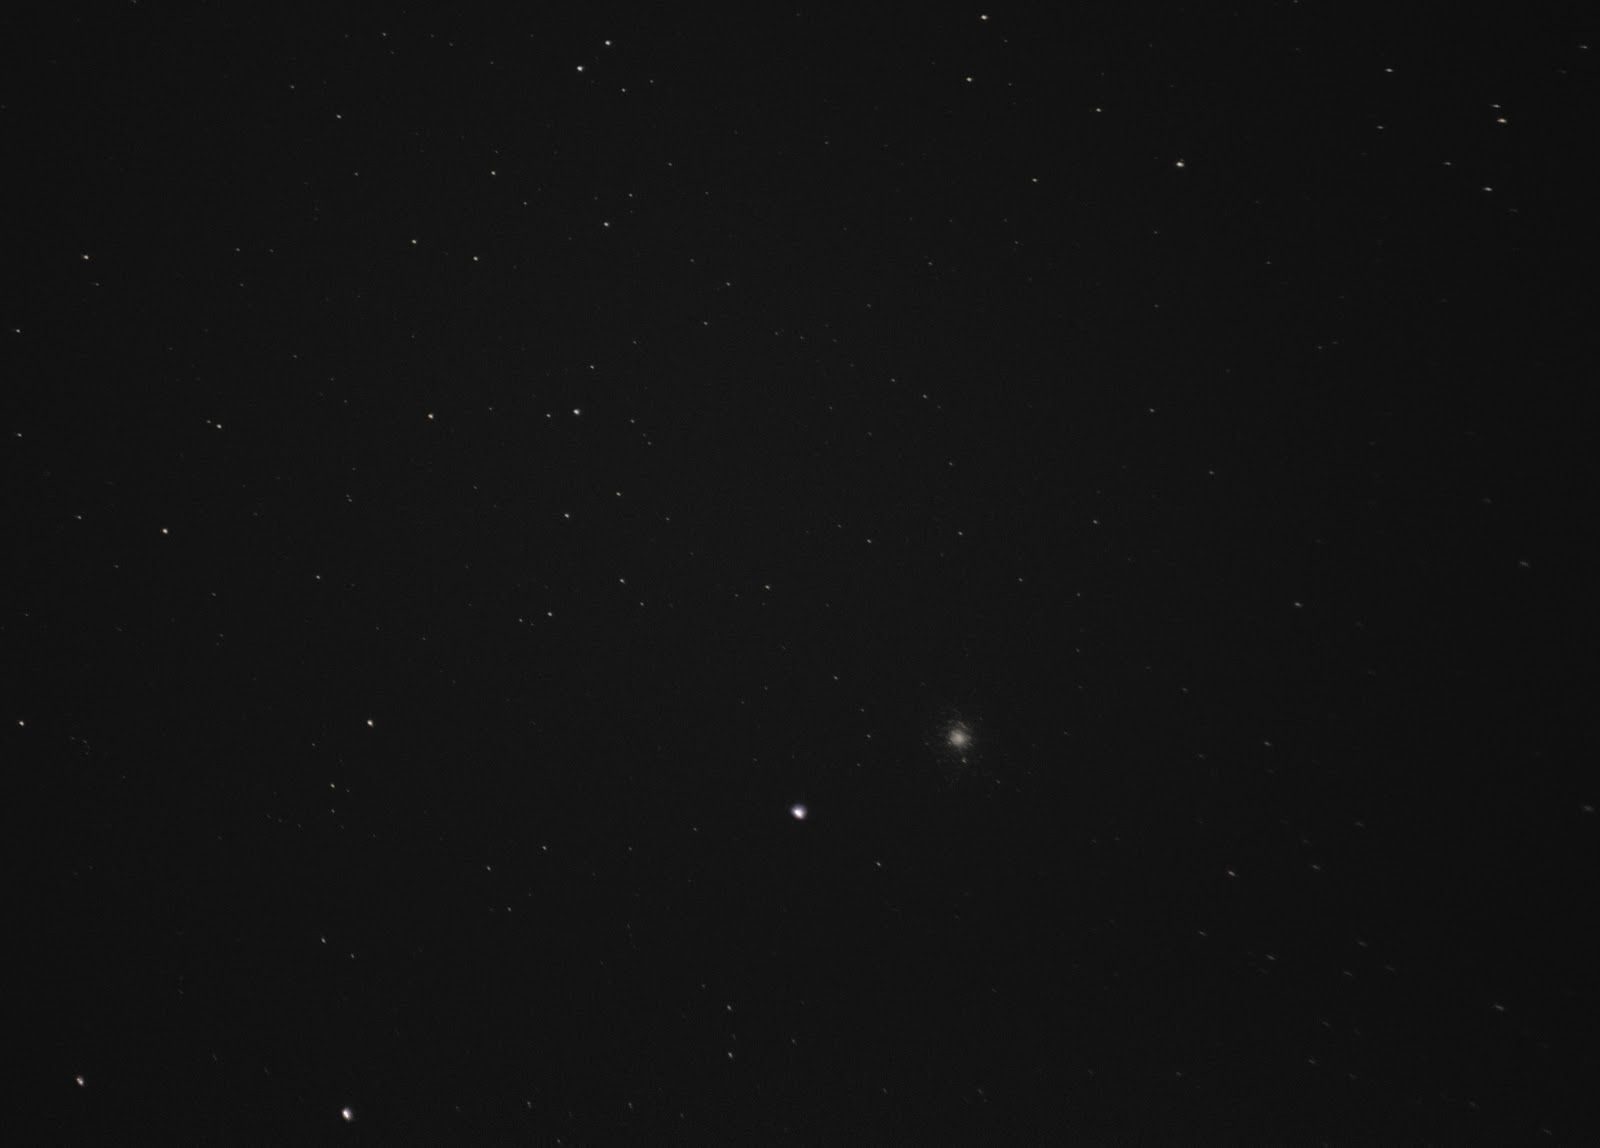 m5 with 300mm dslr